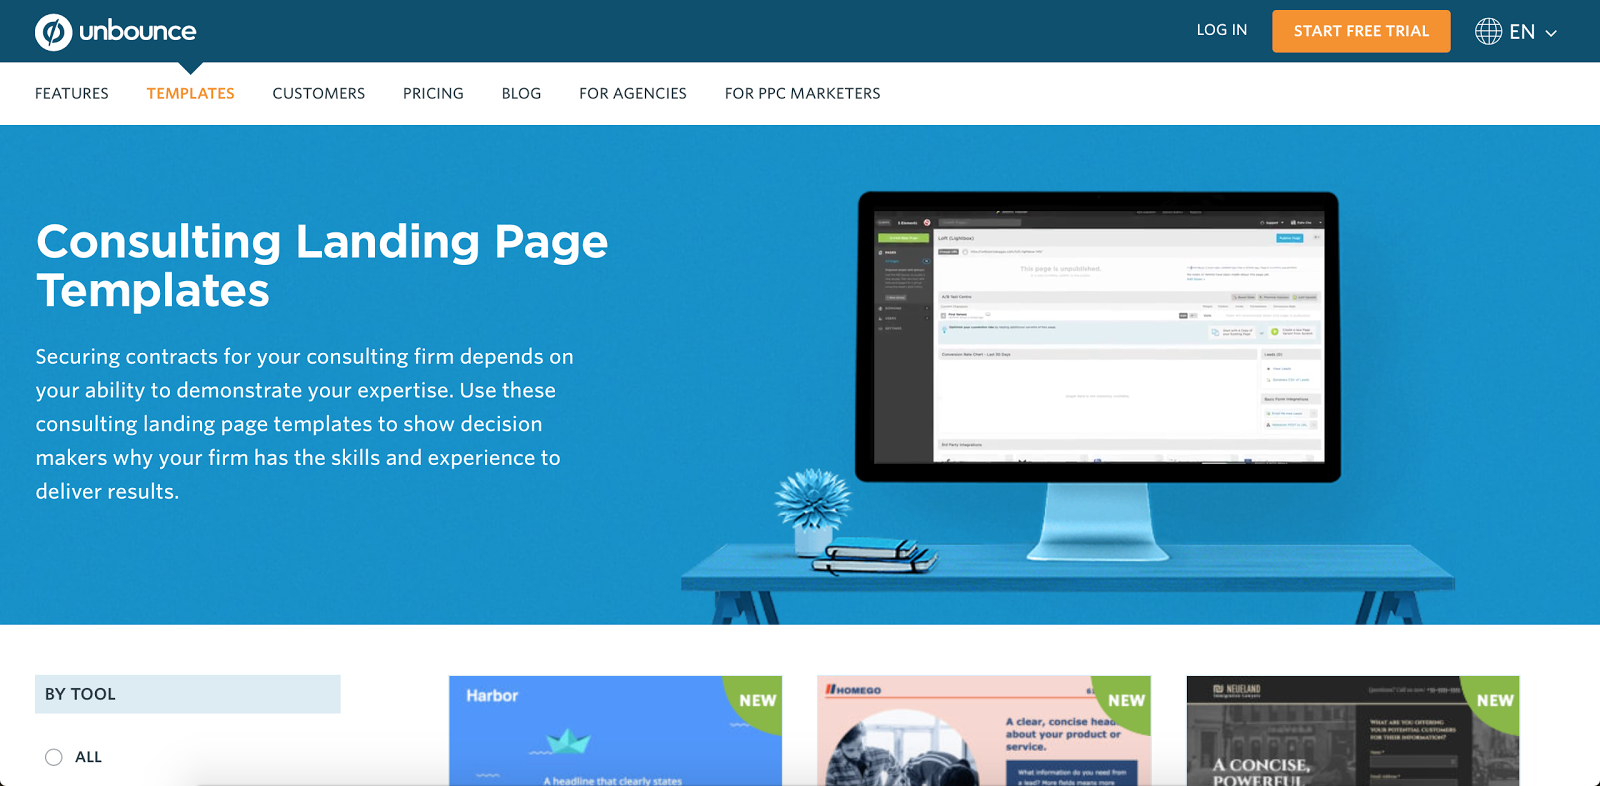 This page is targeted specifically to consultanta building landing pages